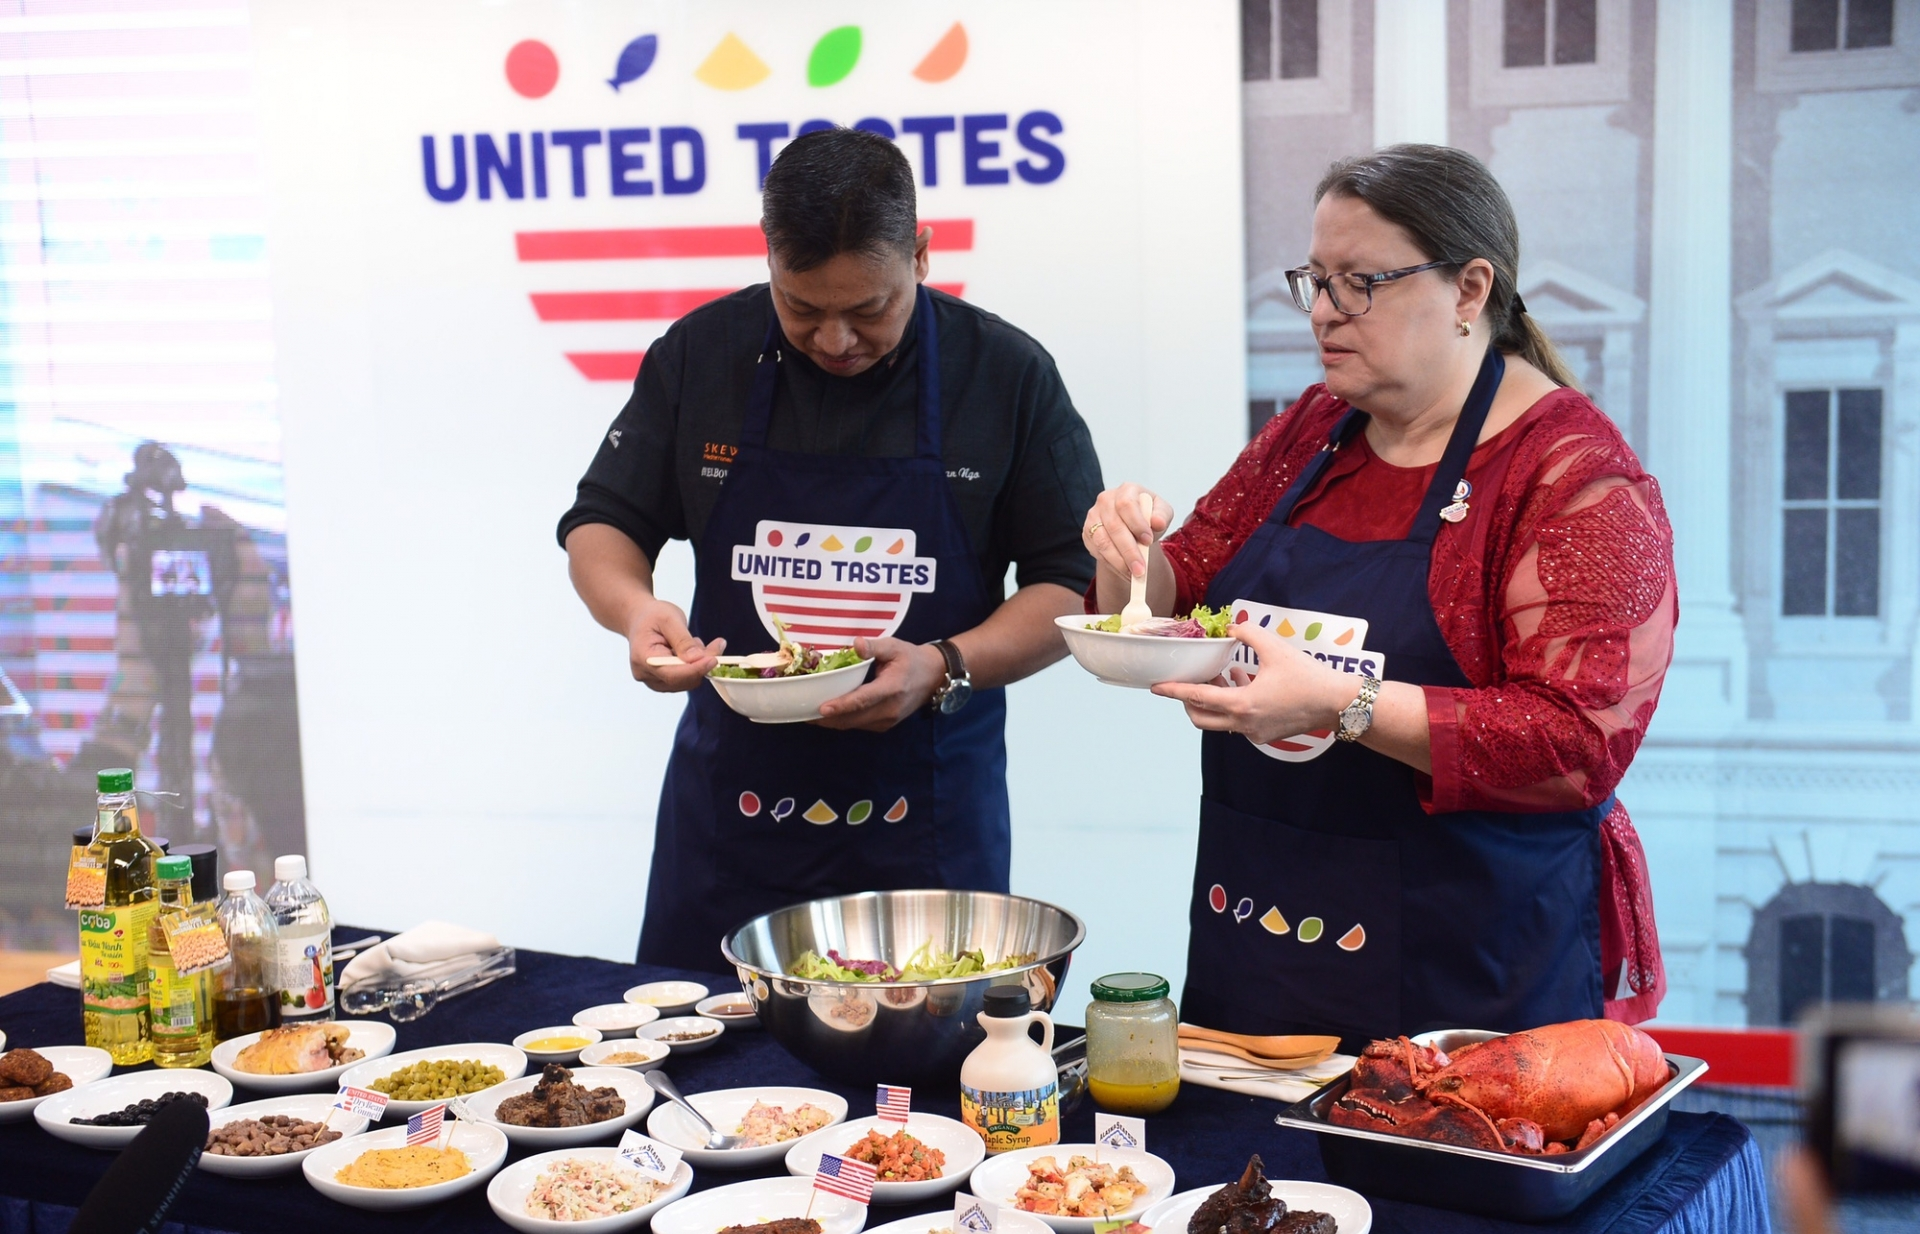 'United Tastes' desires to bring US farm products into Vietnam